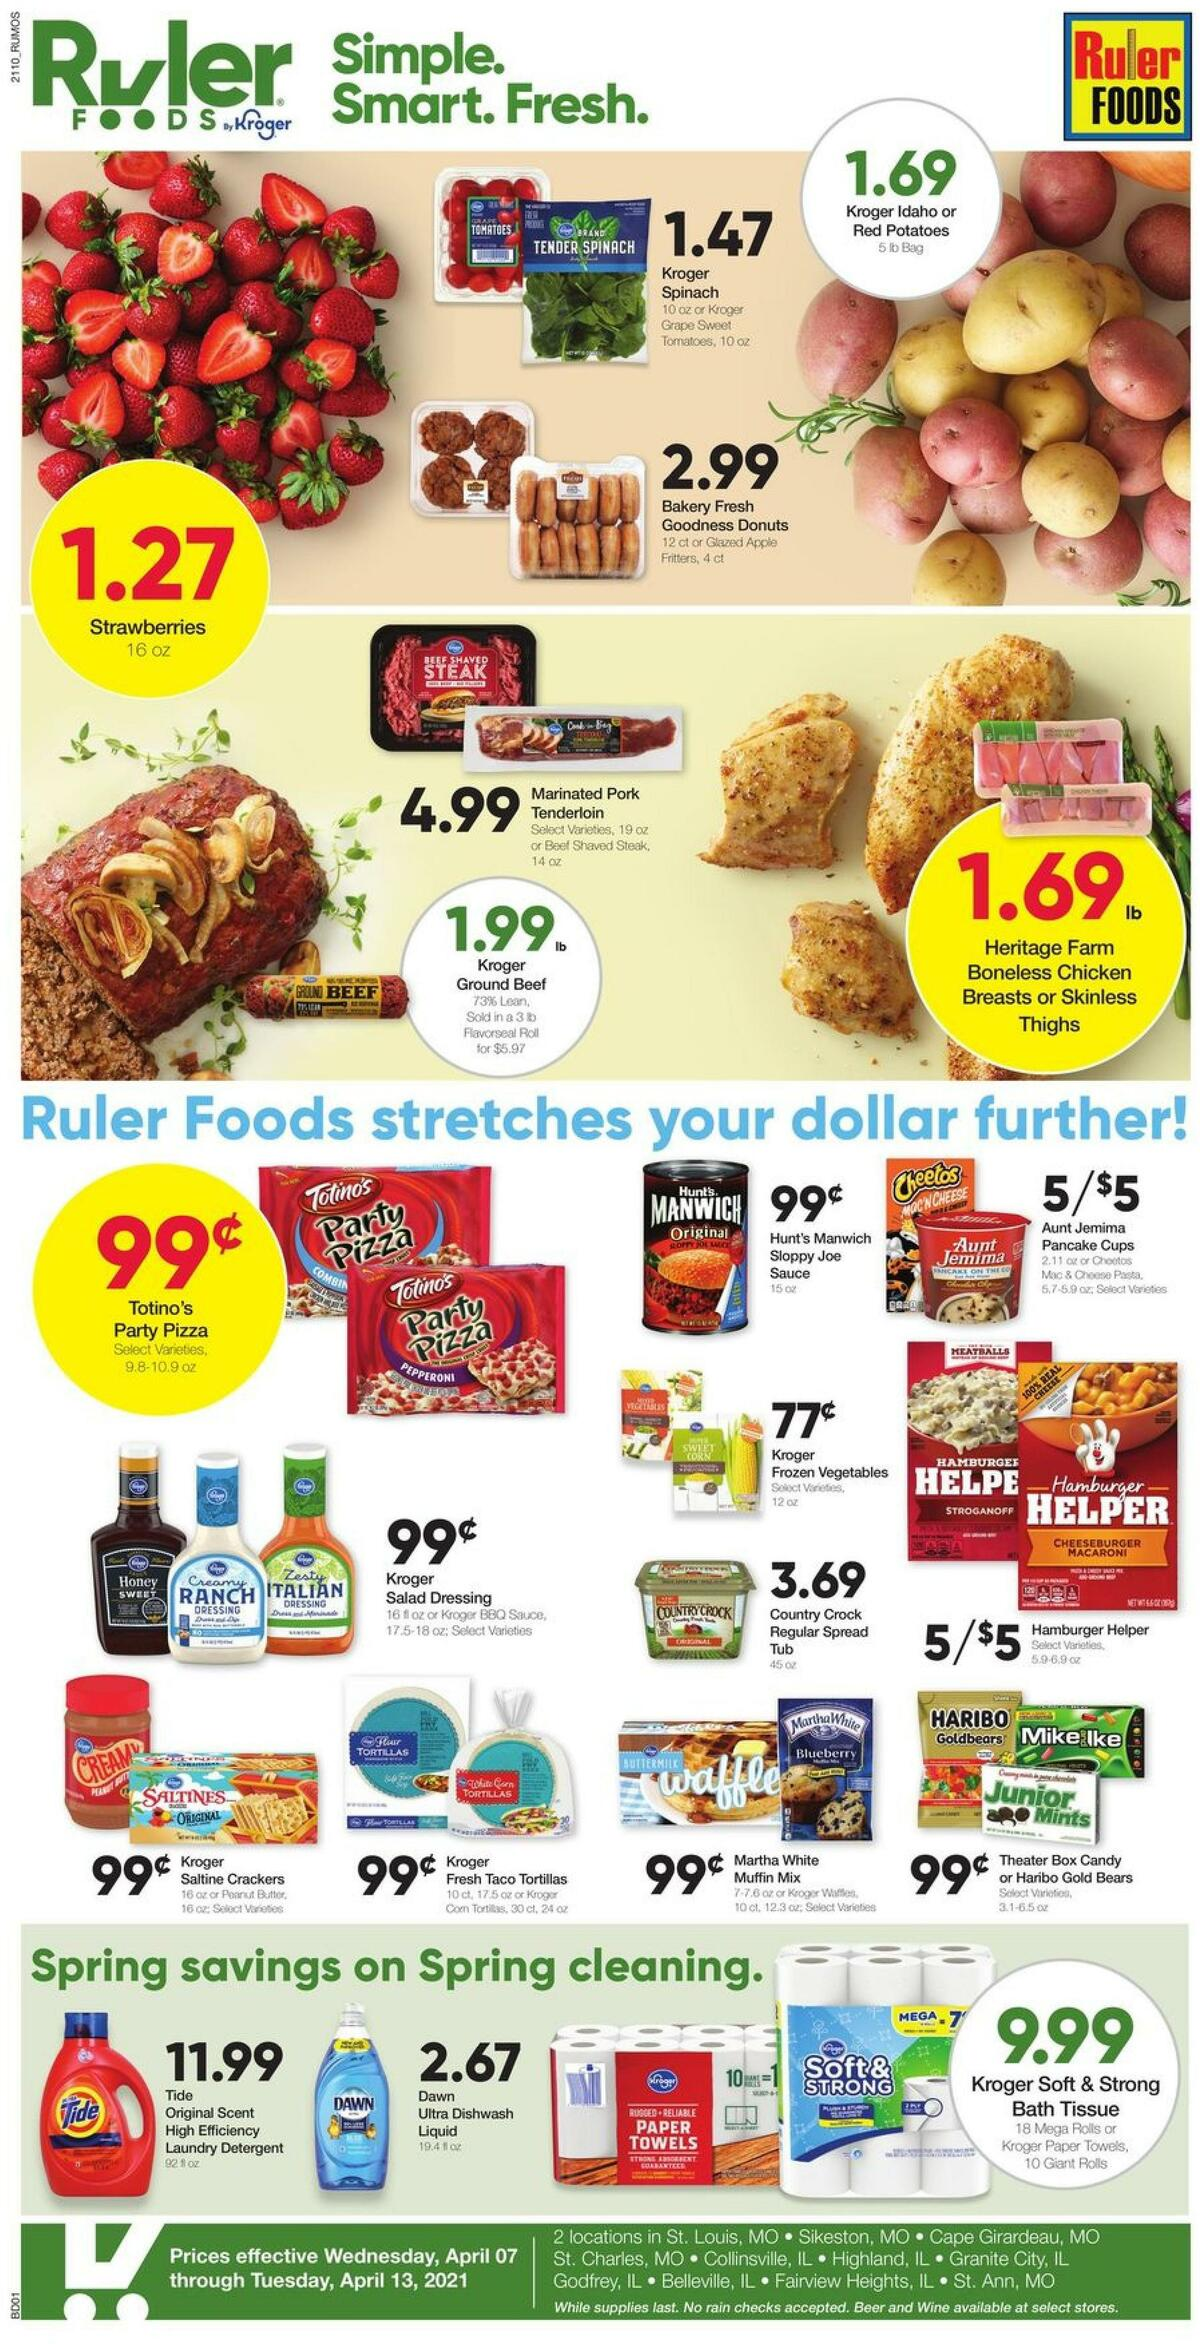 Ruler Foods Weekly Ad from April 7